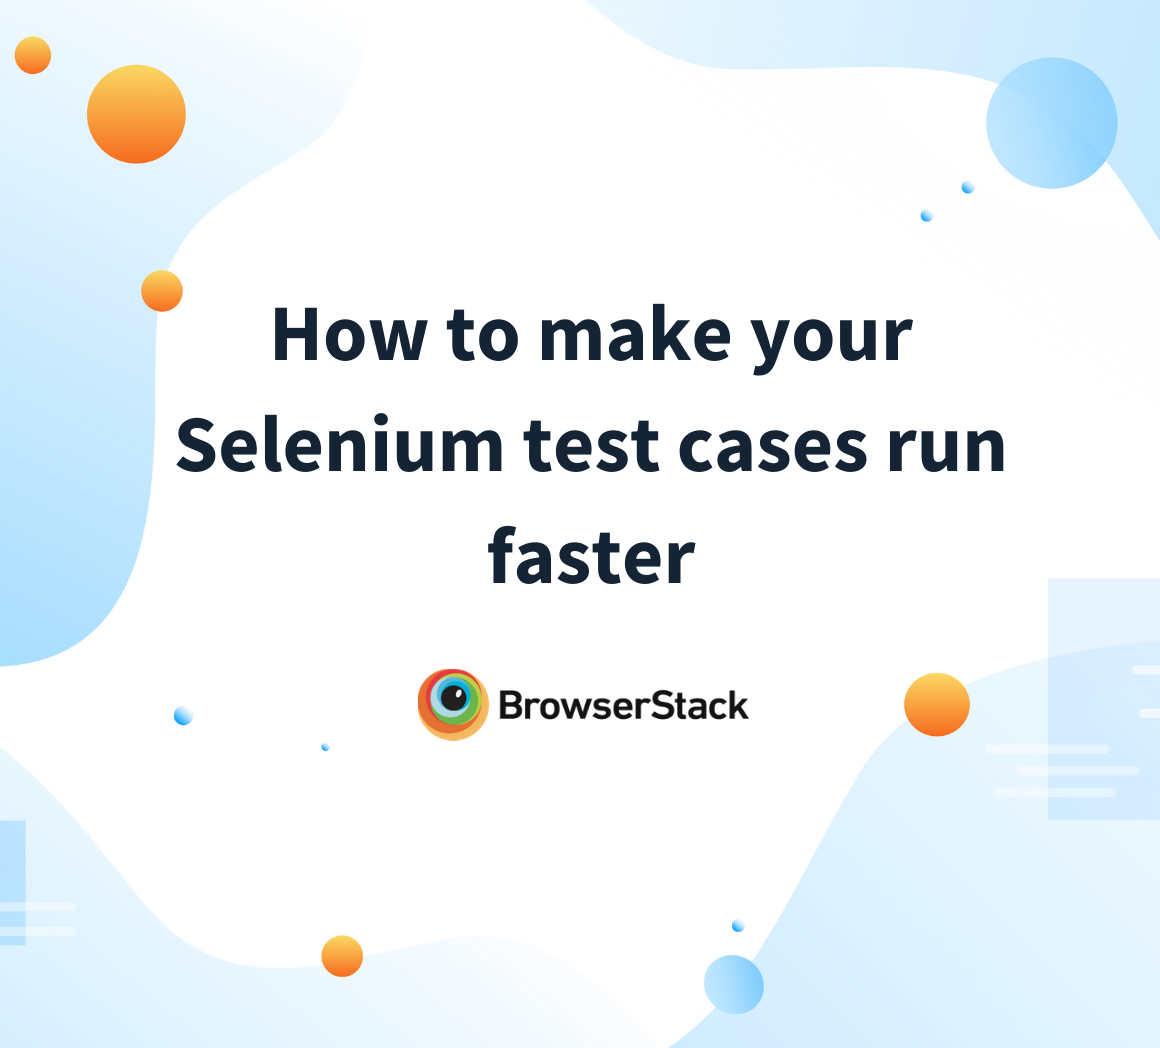 Make your Selenium tests run faster